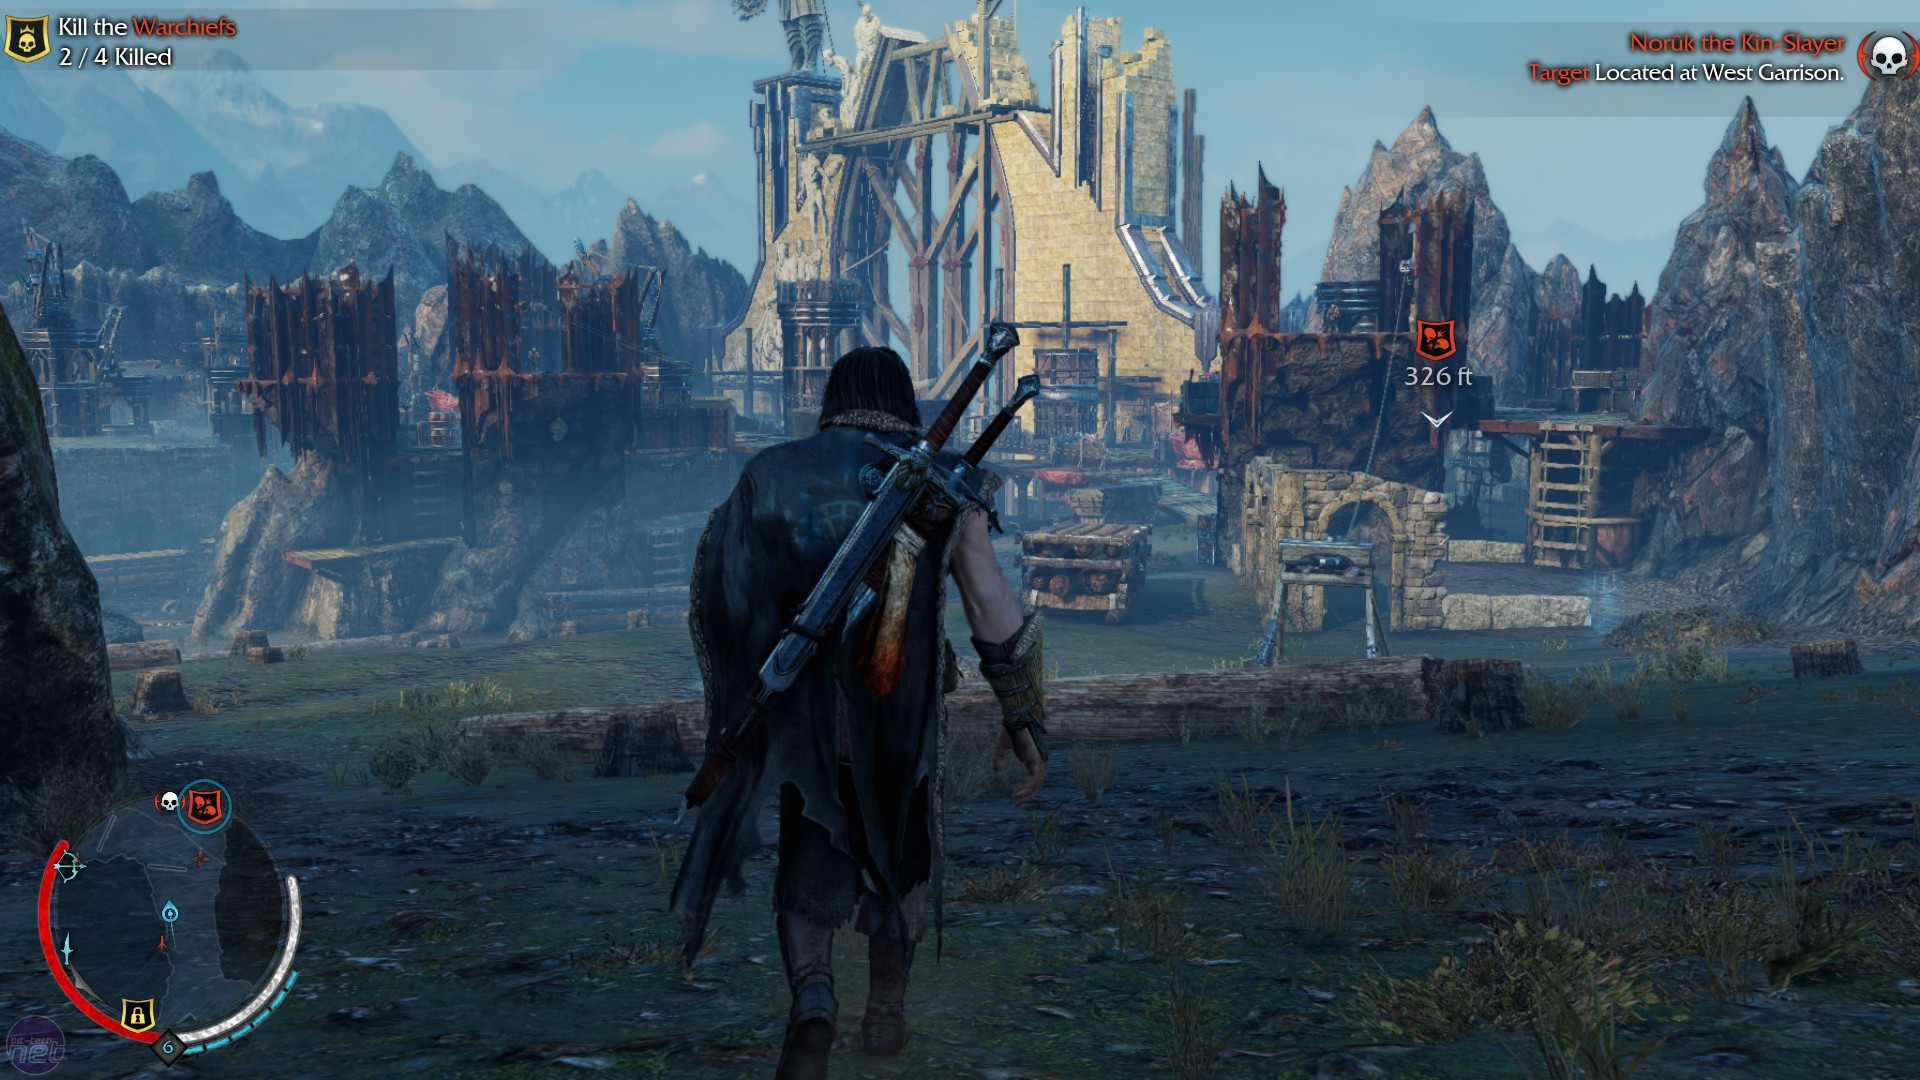 how to find irith shadow of mordor